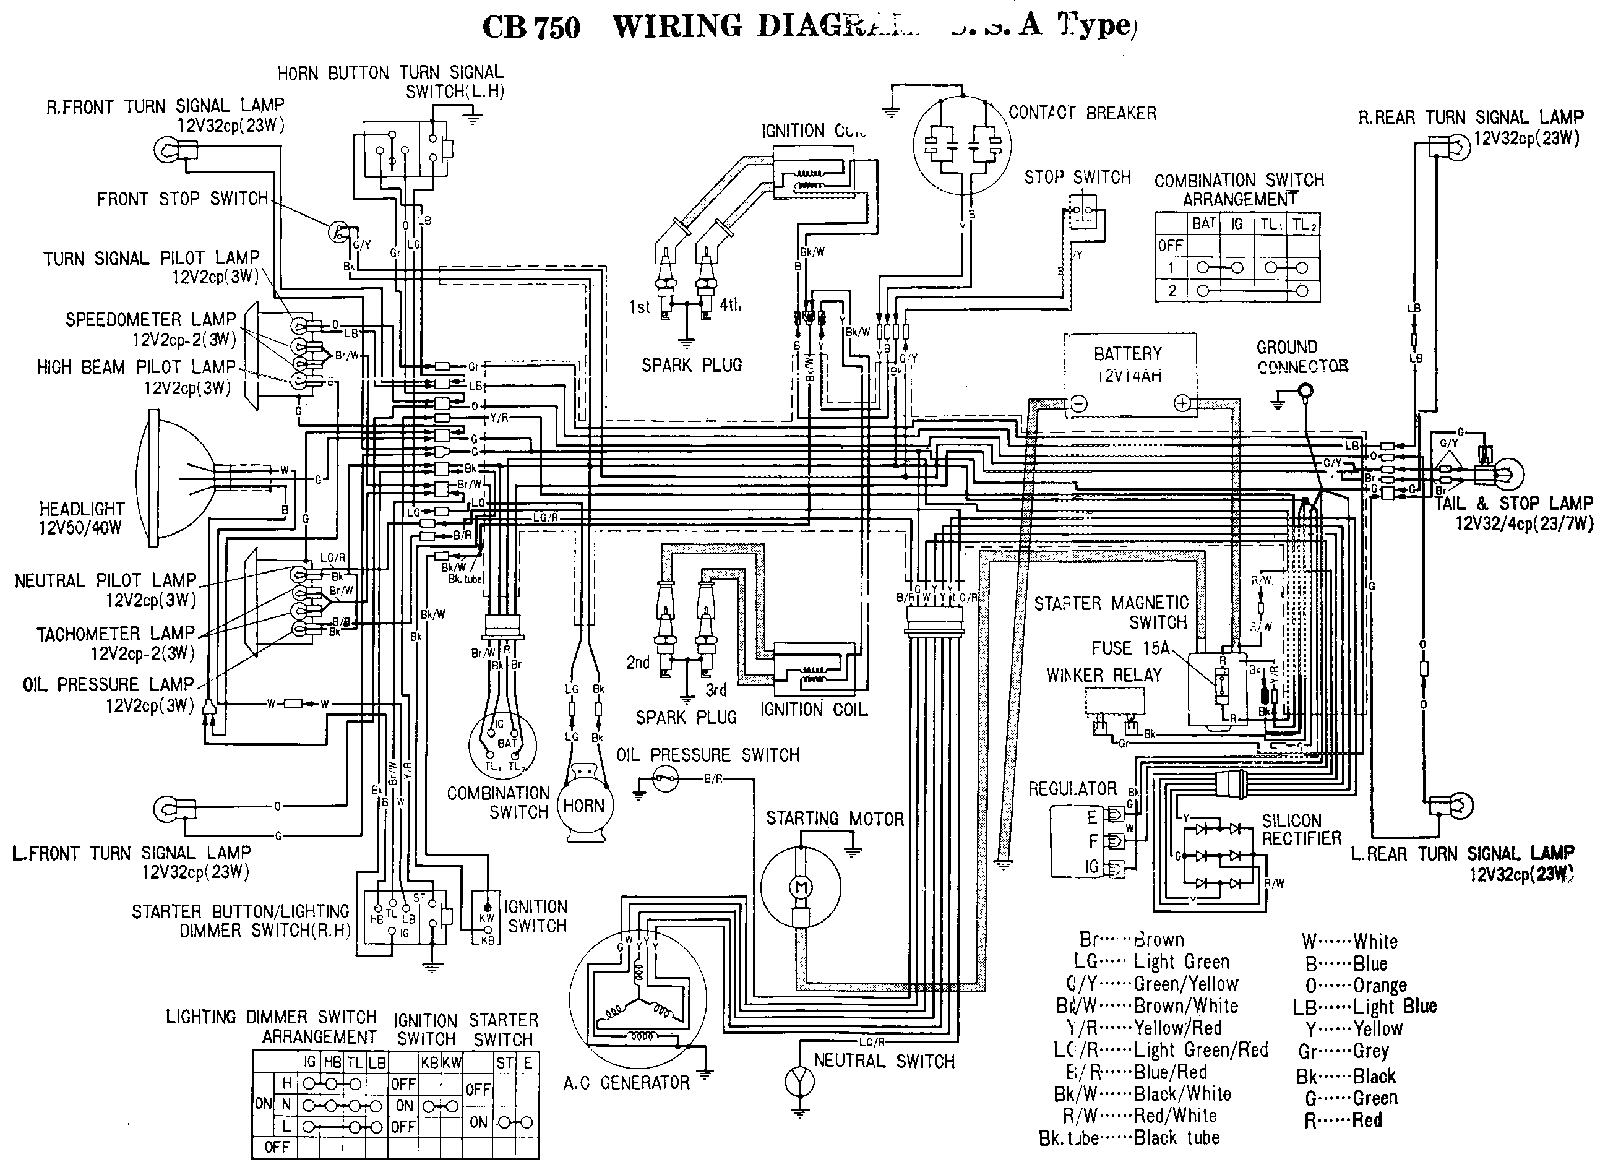 cb750_71_wiring_diagram png